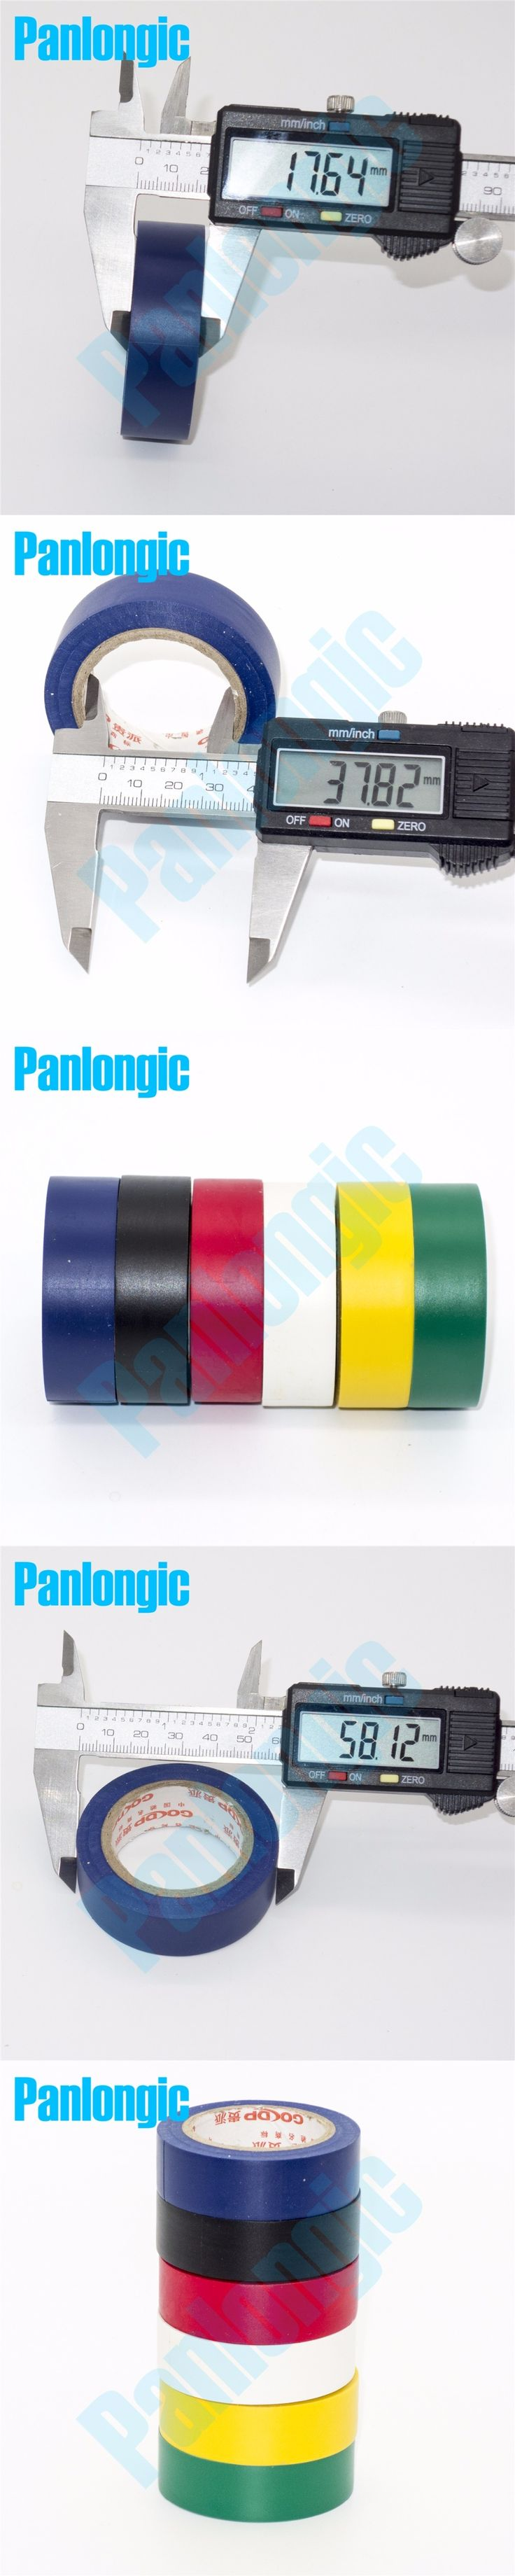 6PCS 6 Colors 10Meters/pcs Electrical Tape Insulation Adhesive Tape High Temperature Insulation Tape Waterproof PVC Tape